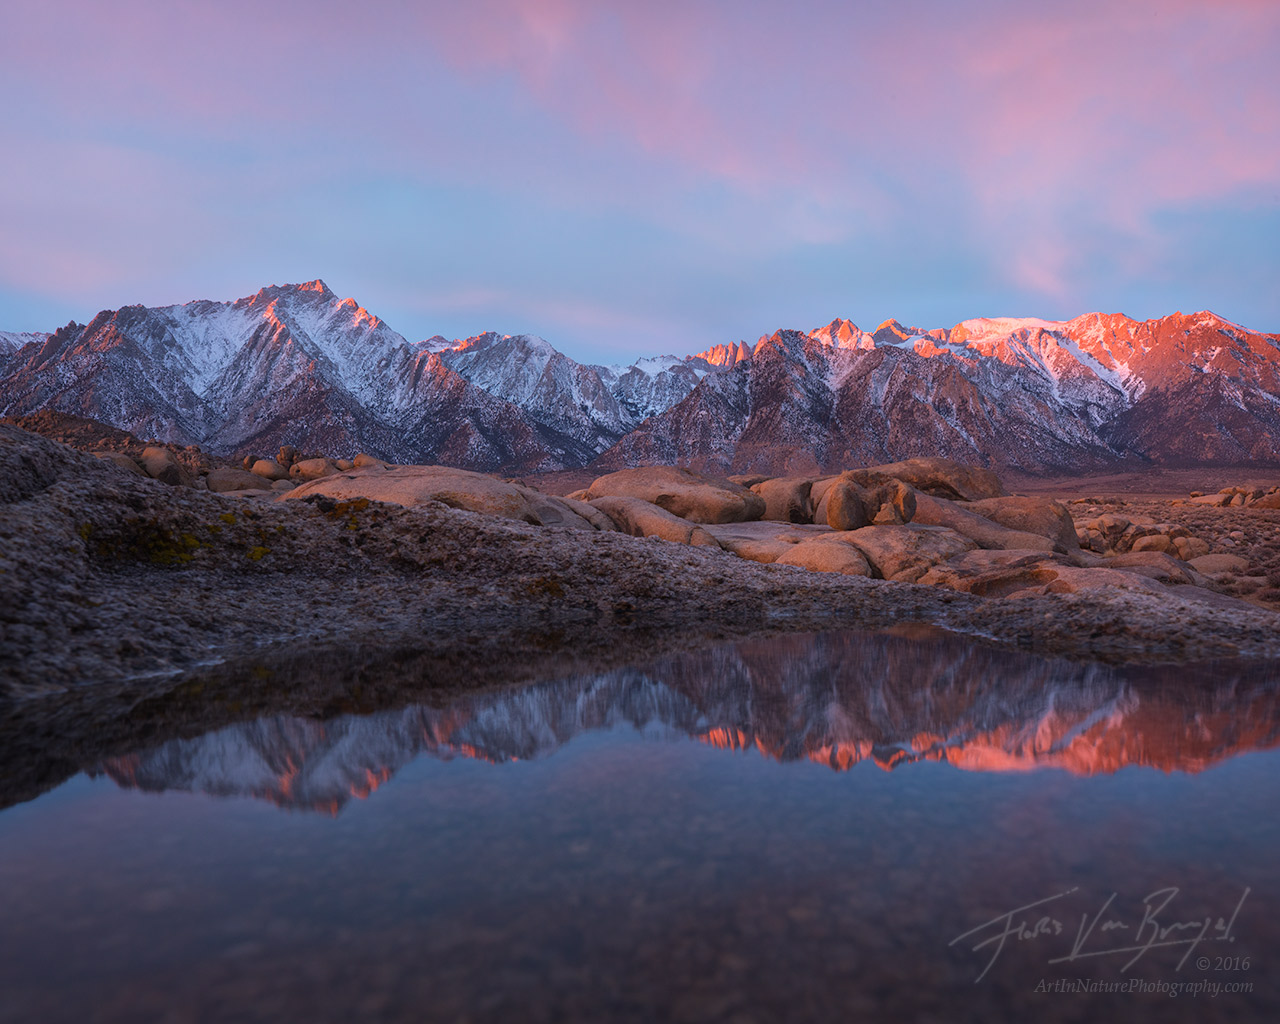 Wallpaper Images Of Mountains In Fall Creative Owens Valley Images California Art In Nature